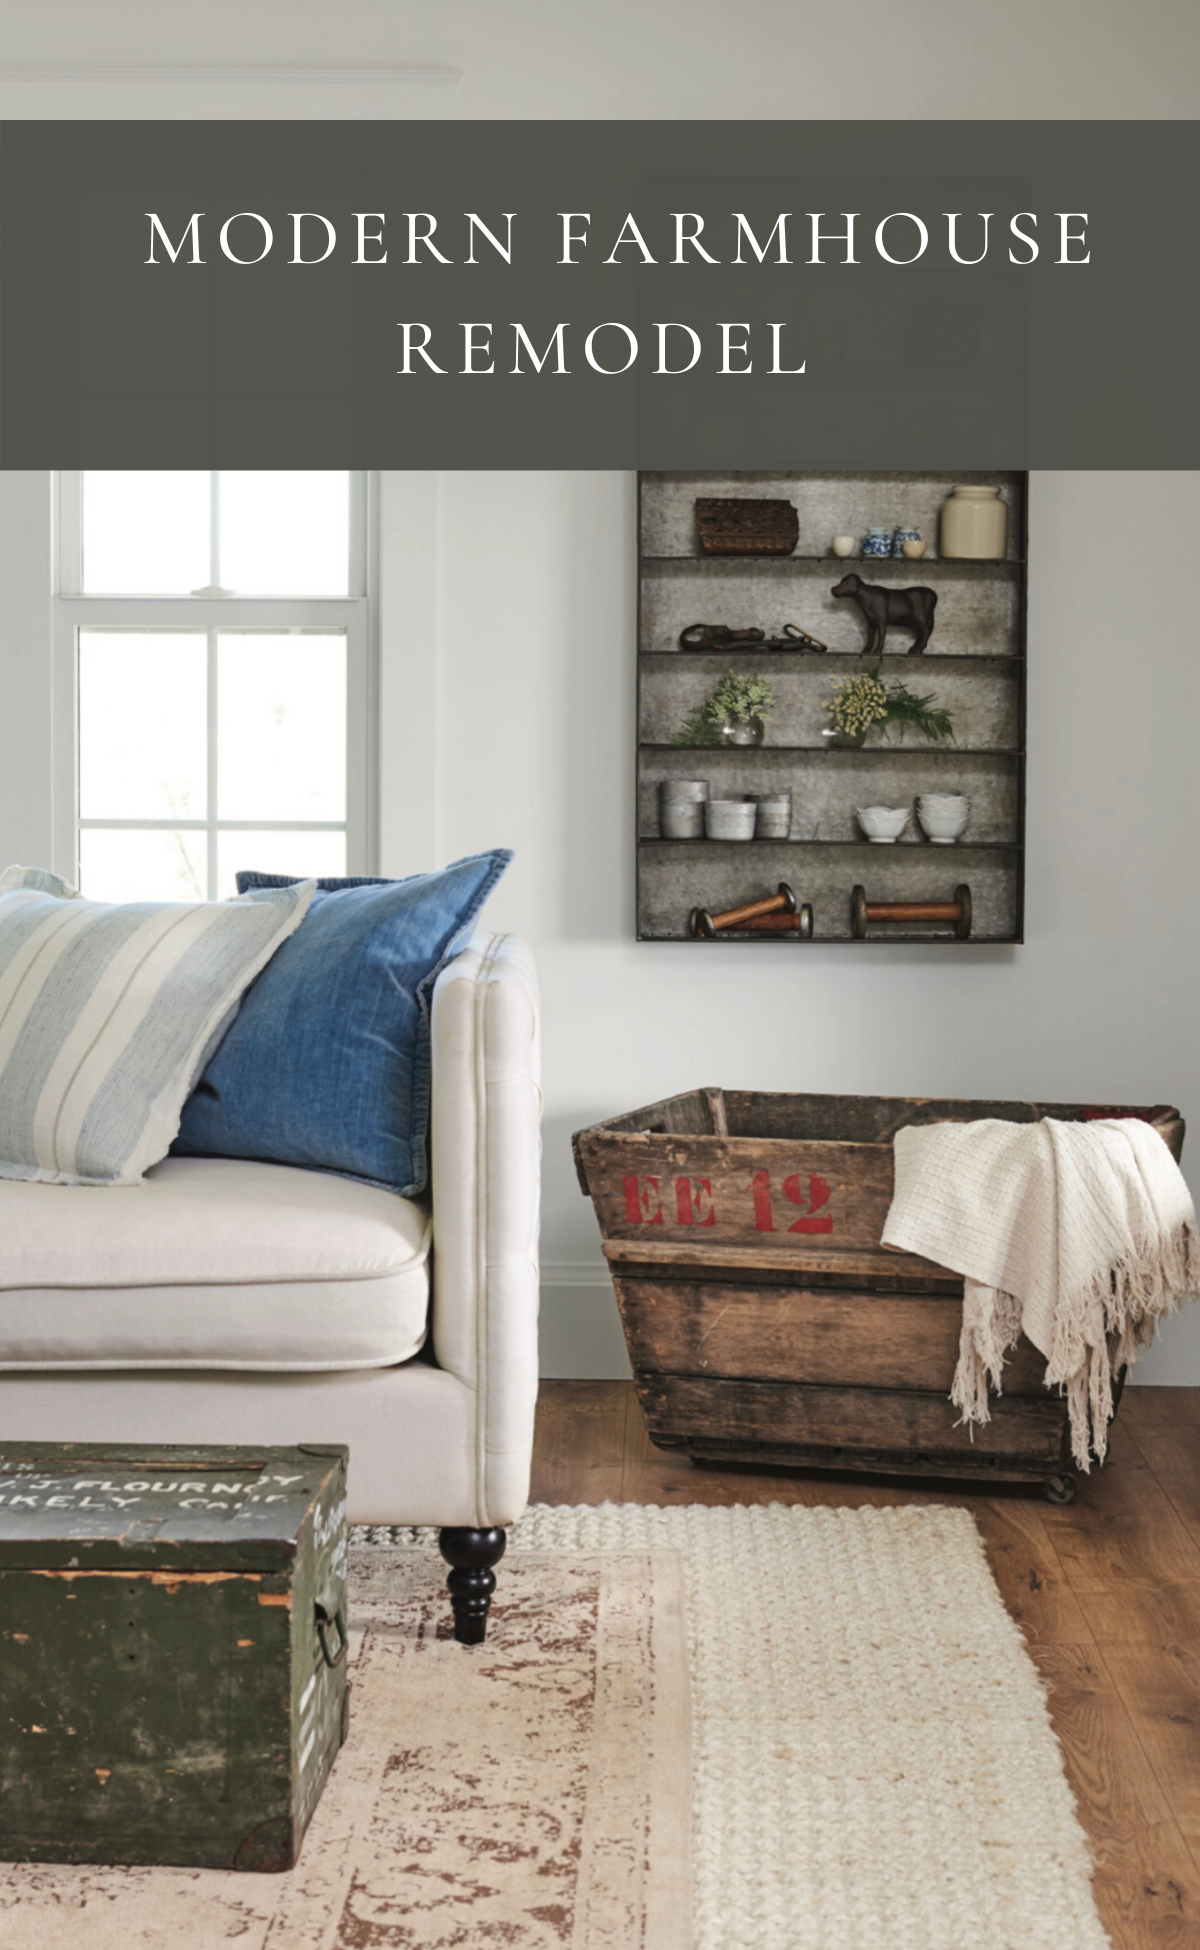 where to buy farmhouse decor in canada farmhouse decor